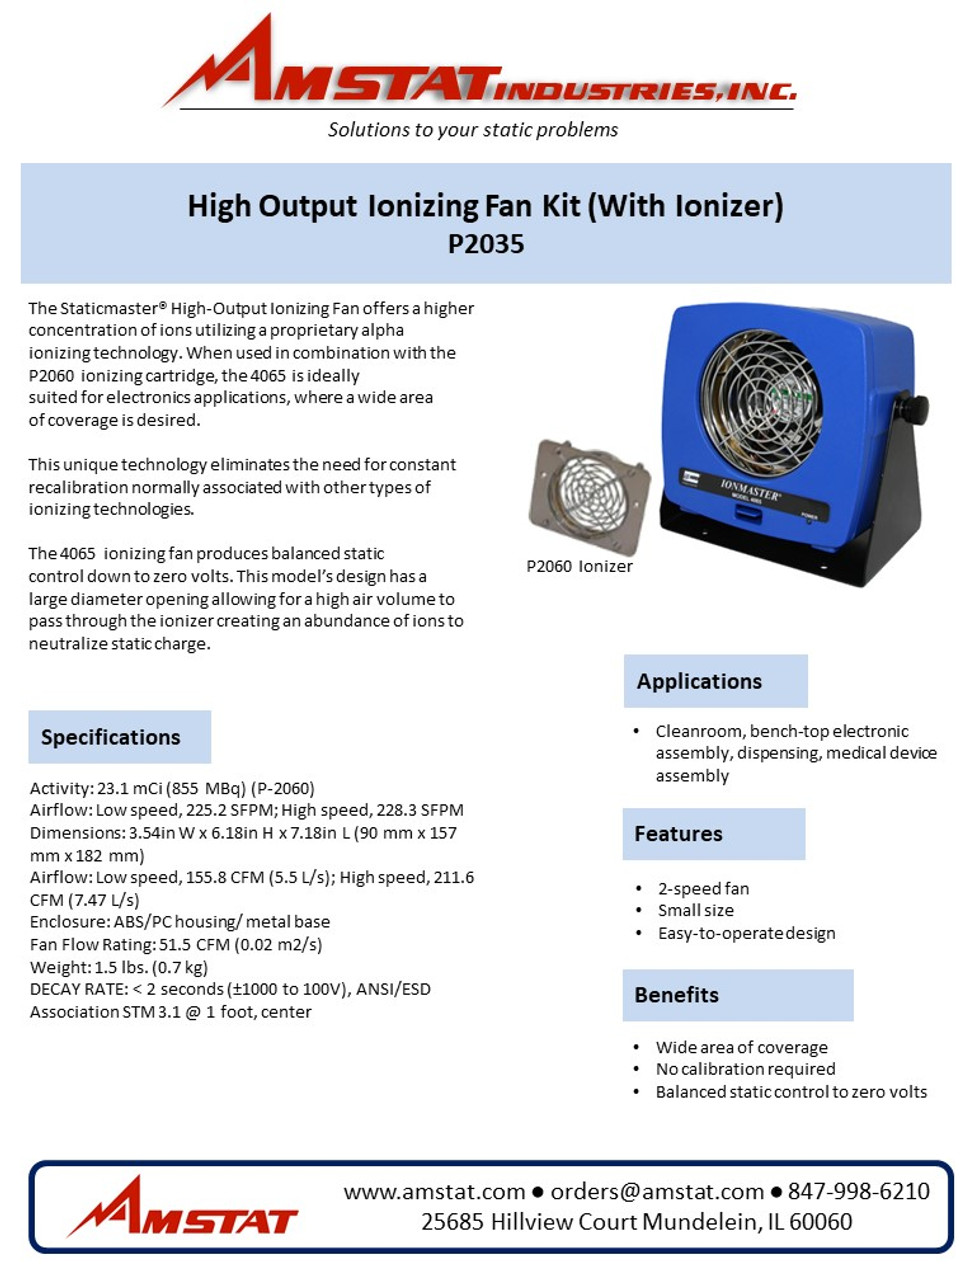 High Output Ionizing Fan Kit (With Ionizer)